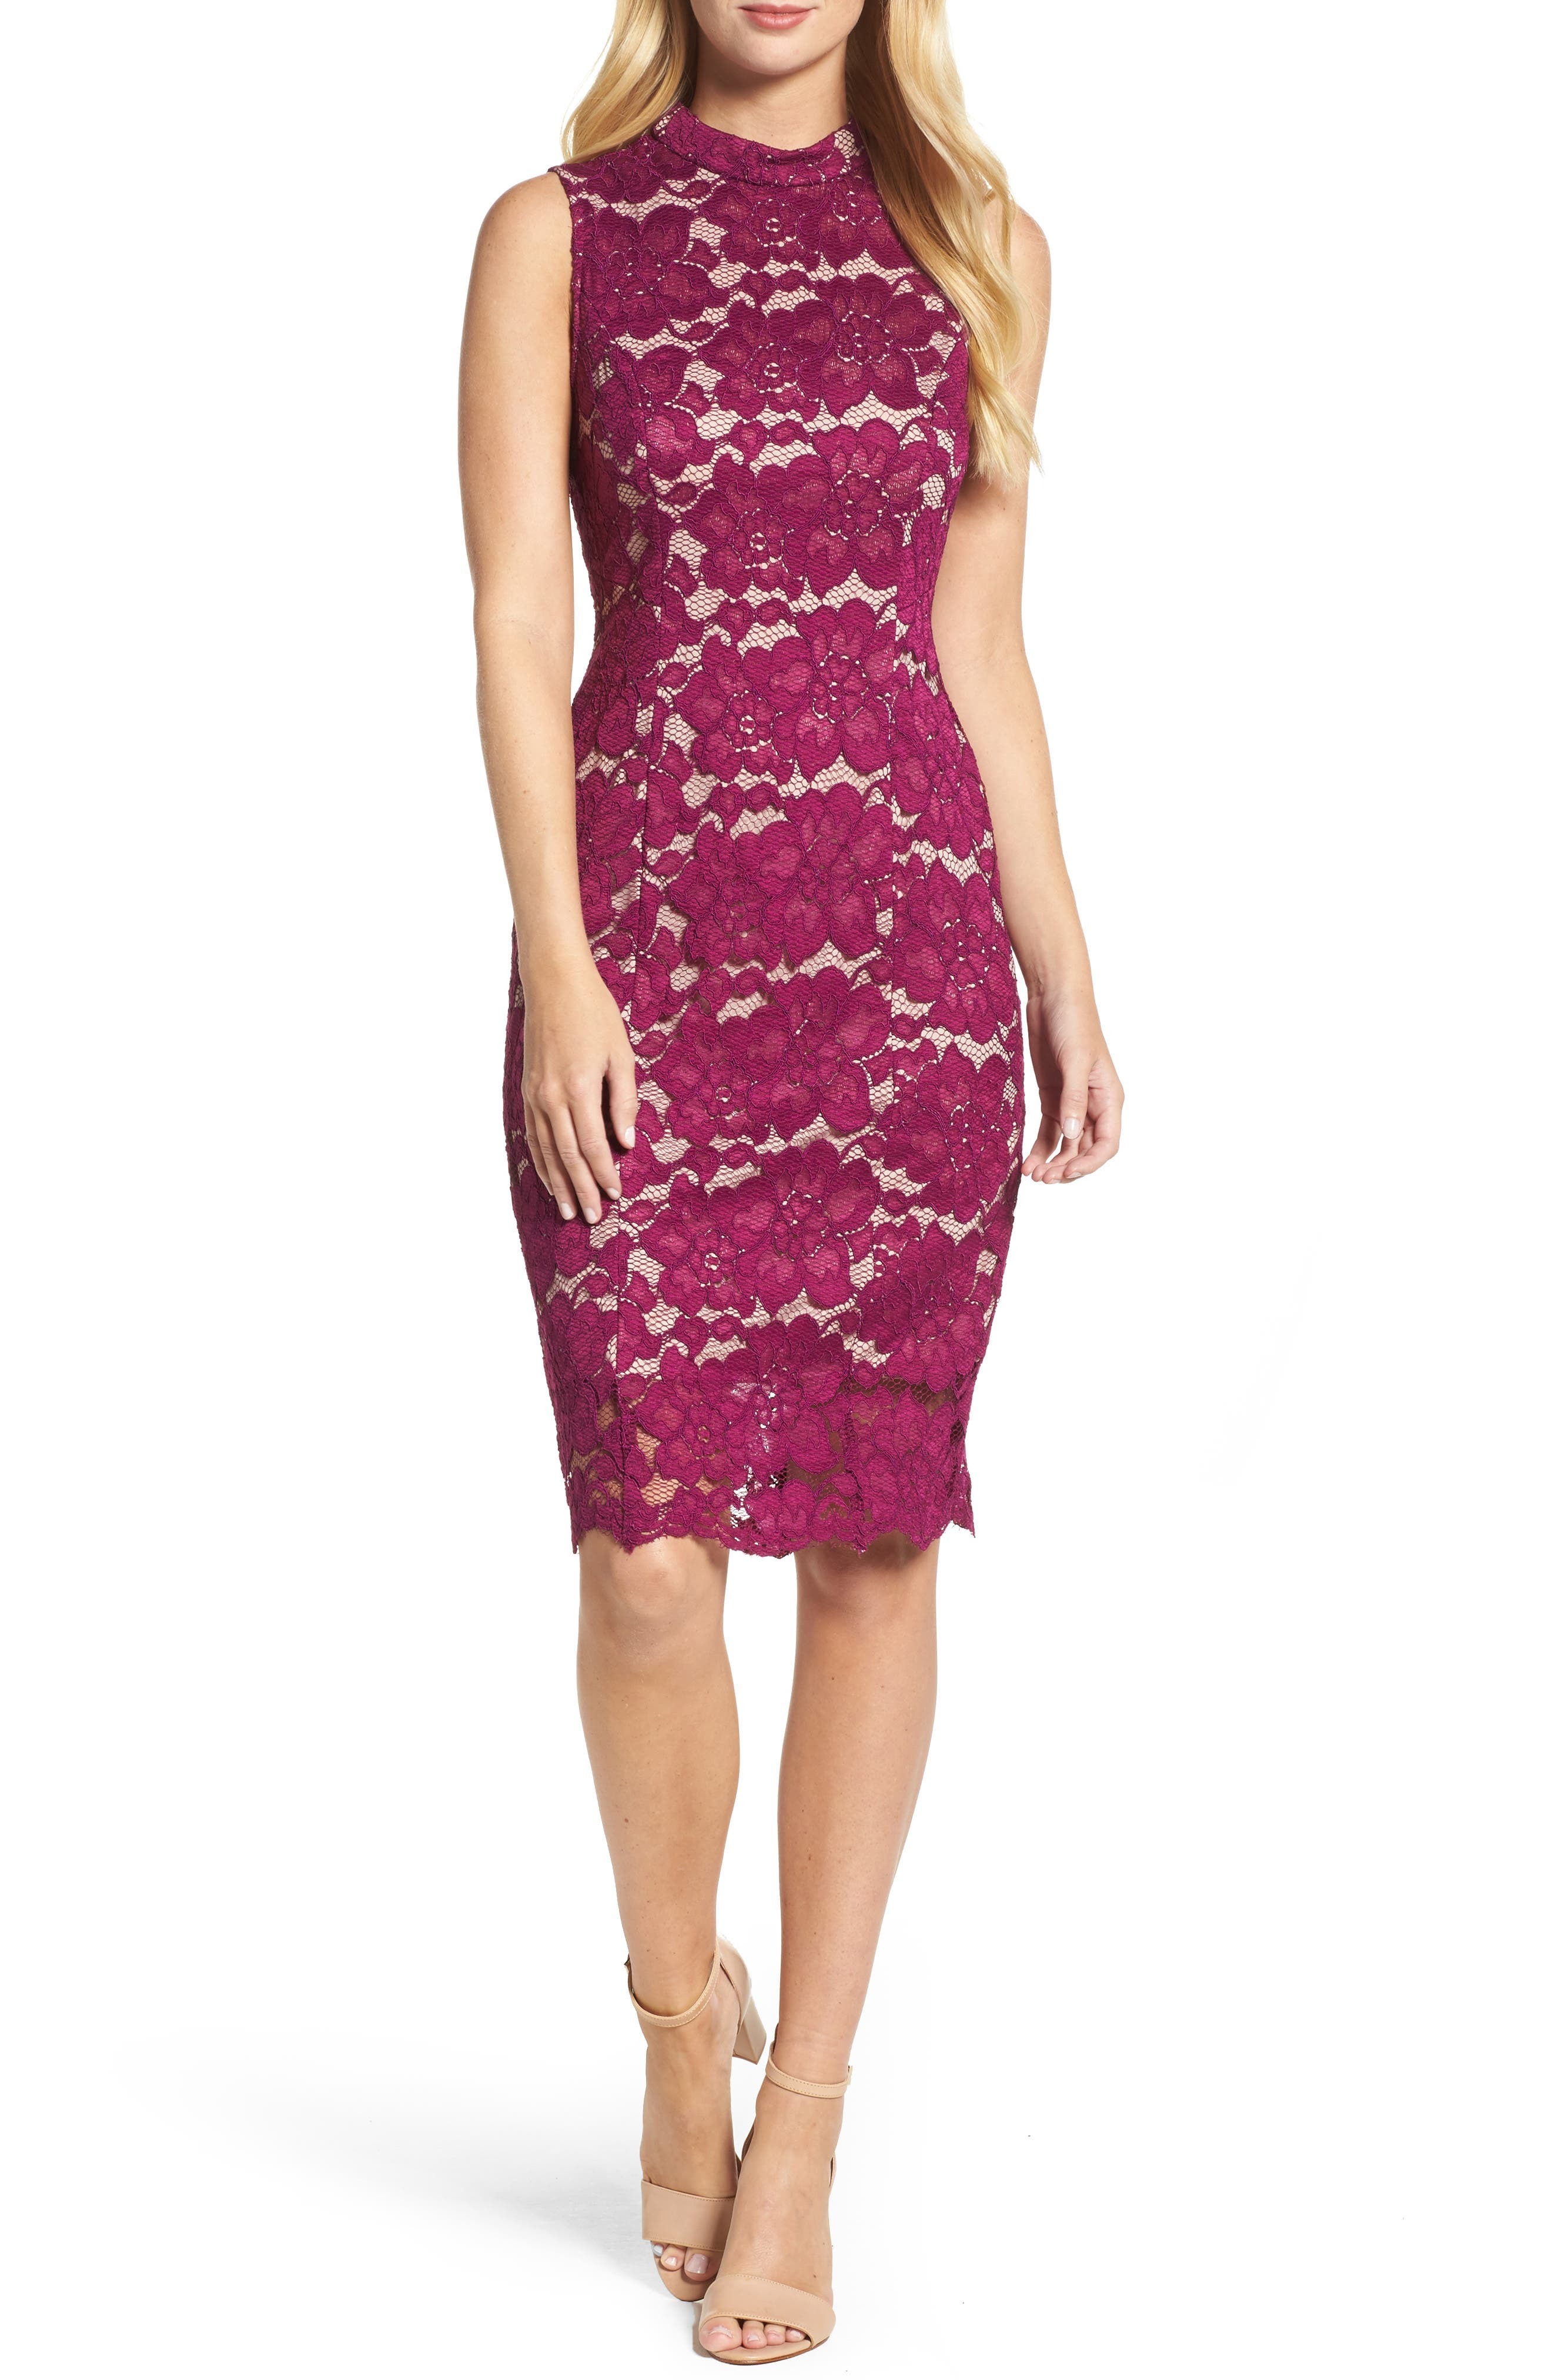 Twin Flower Lace Sheath Dress,                             Main thumbnail 1, color,                             Burgundy